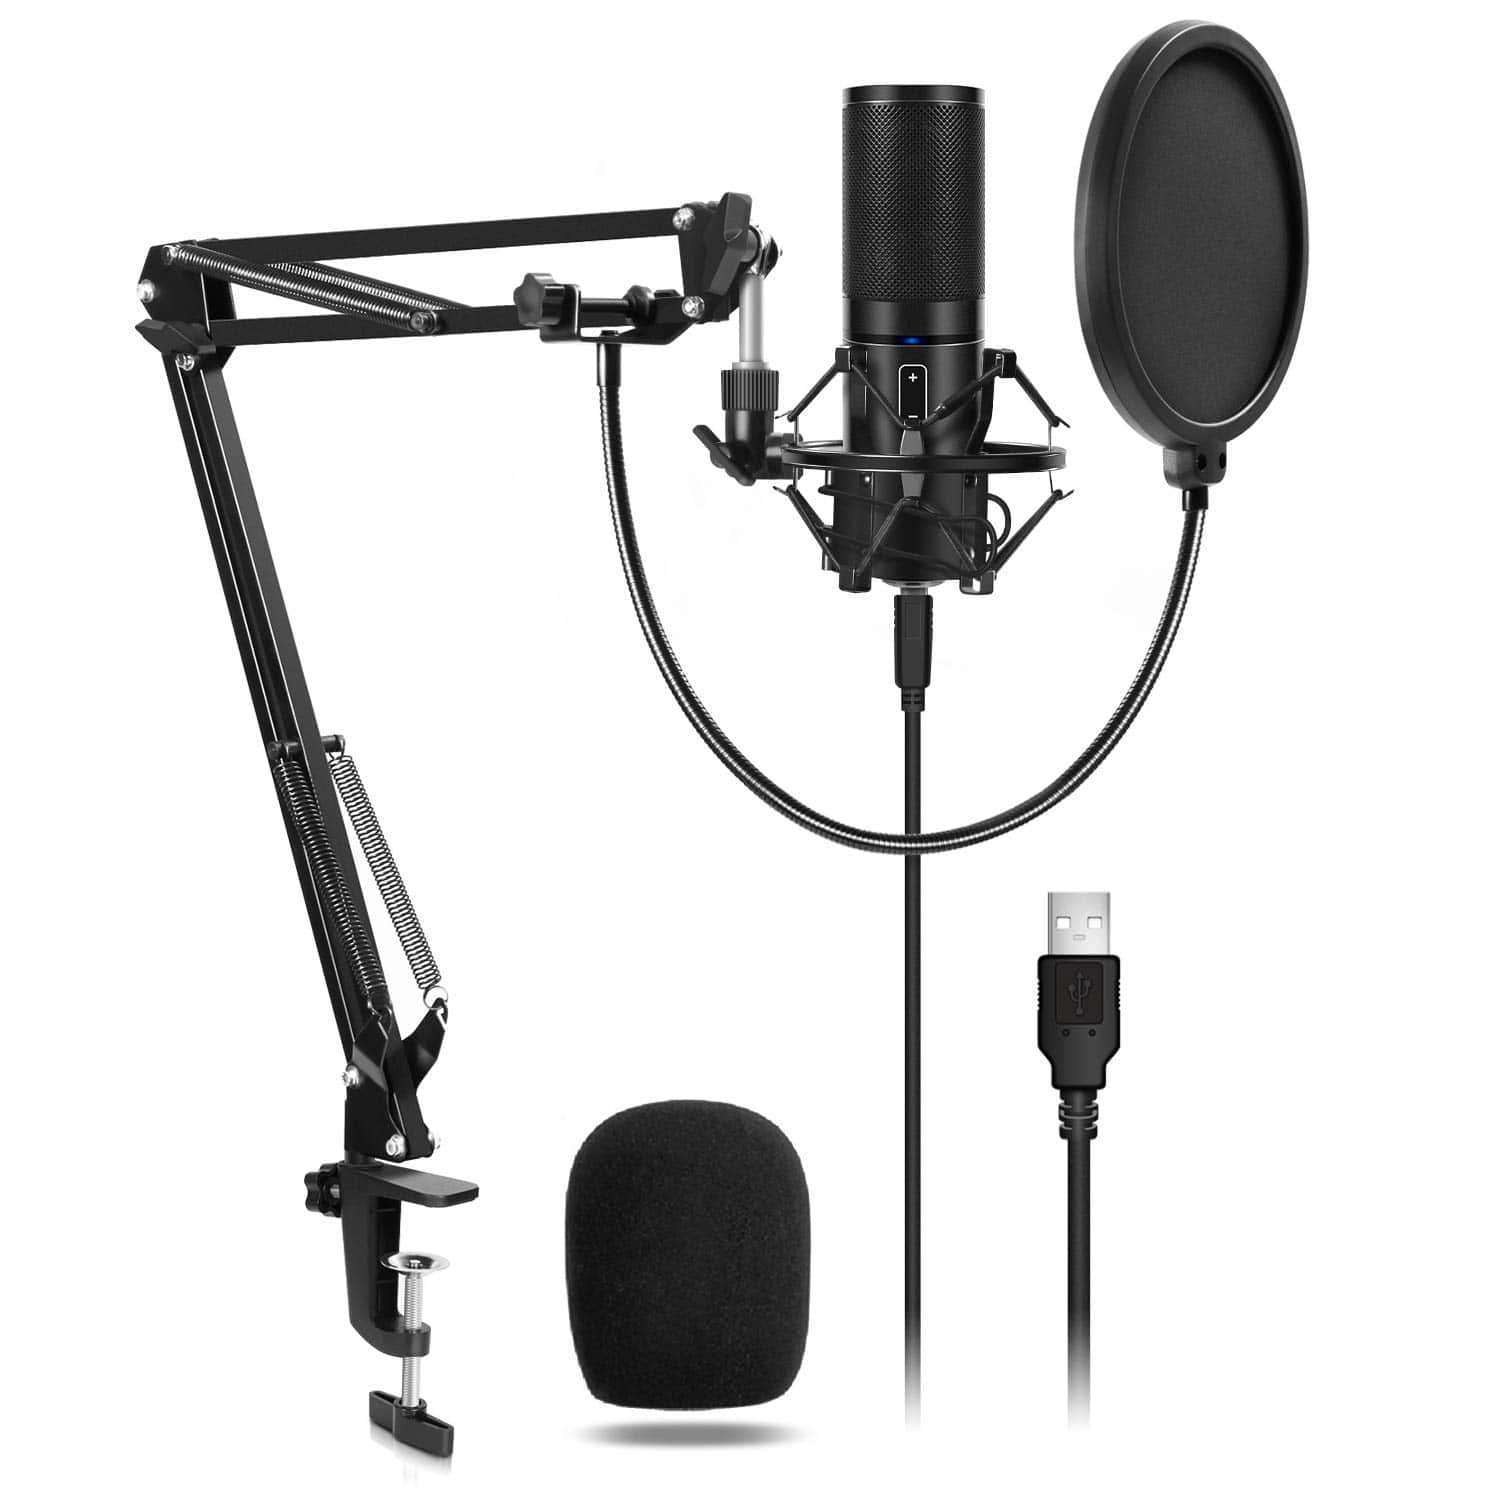 USB Microphone Kit Q9 Condenser Computer Cardioid Mic for Podcast, Game, YouTube Video, Stream, Recording Music, Voice Over $37.49